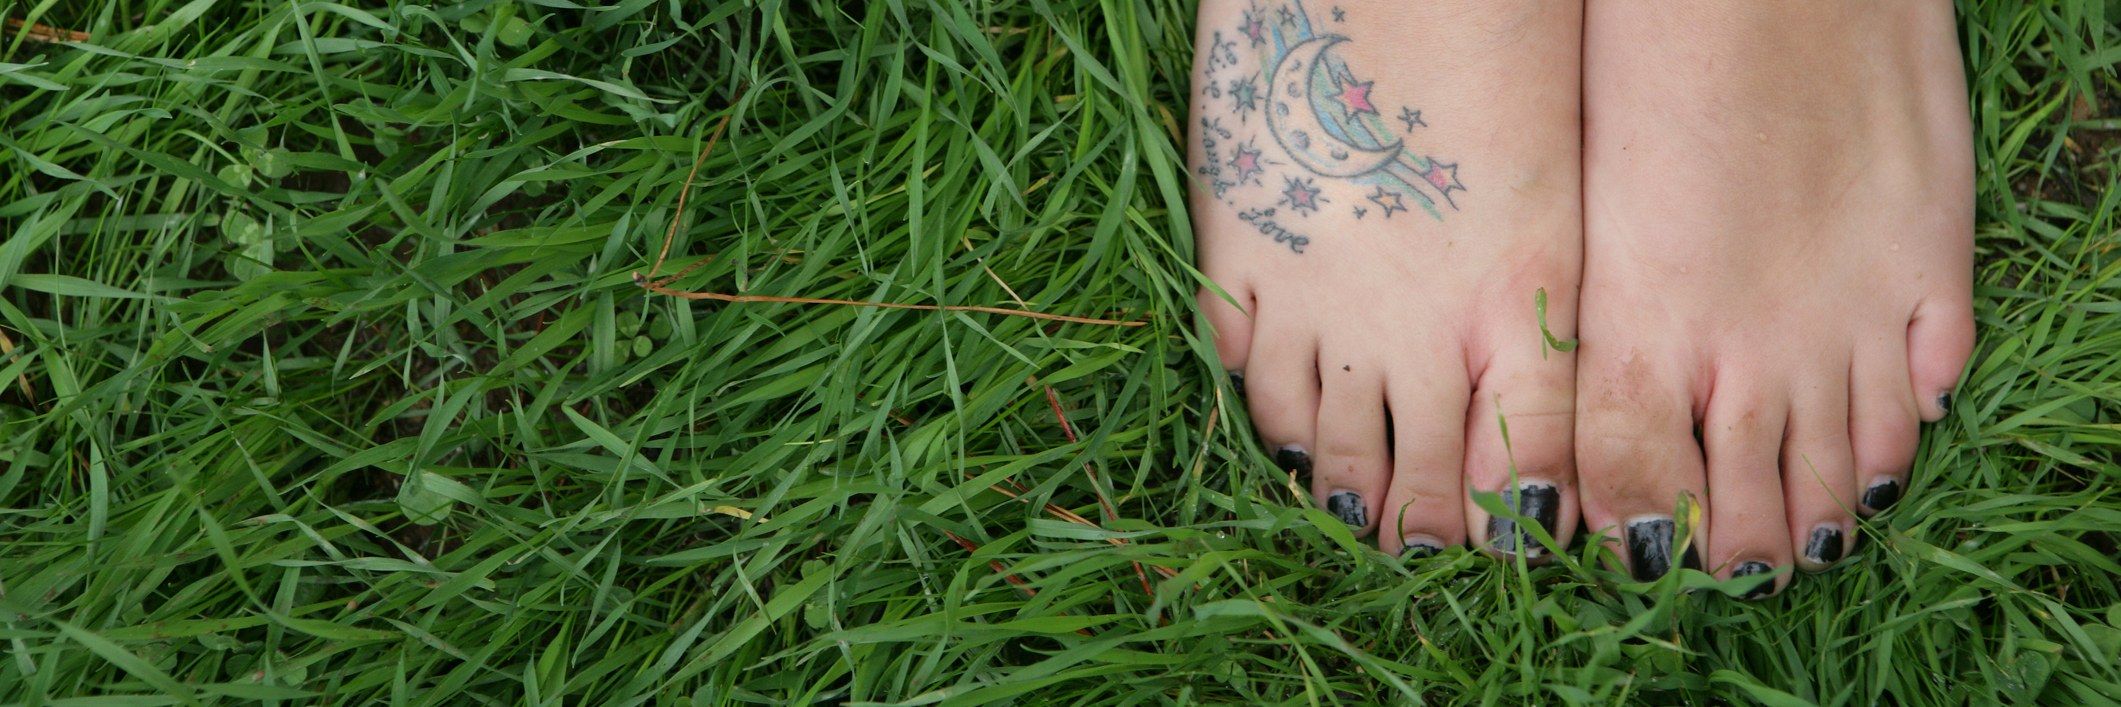 High angle view of woman's barefeet with tattoo.